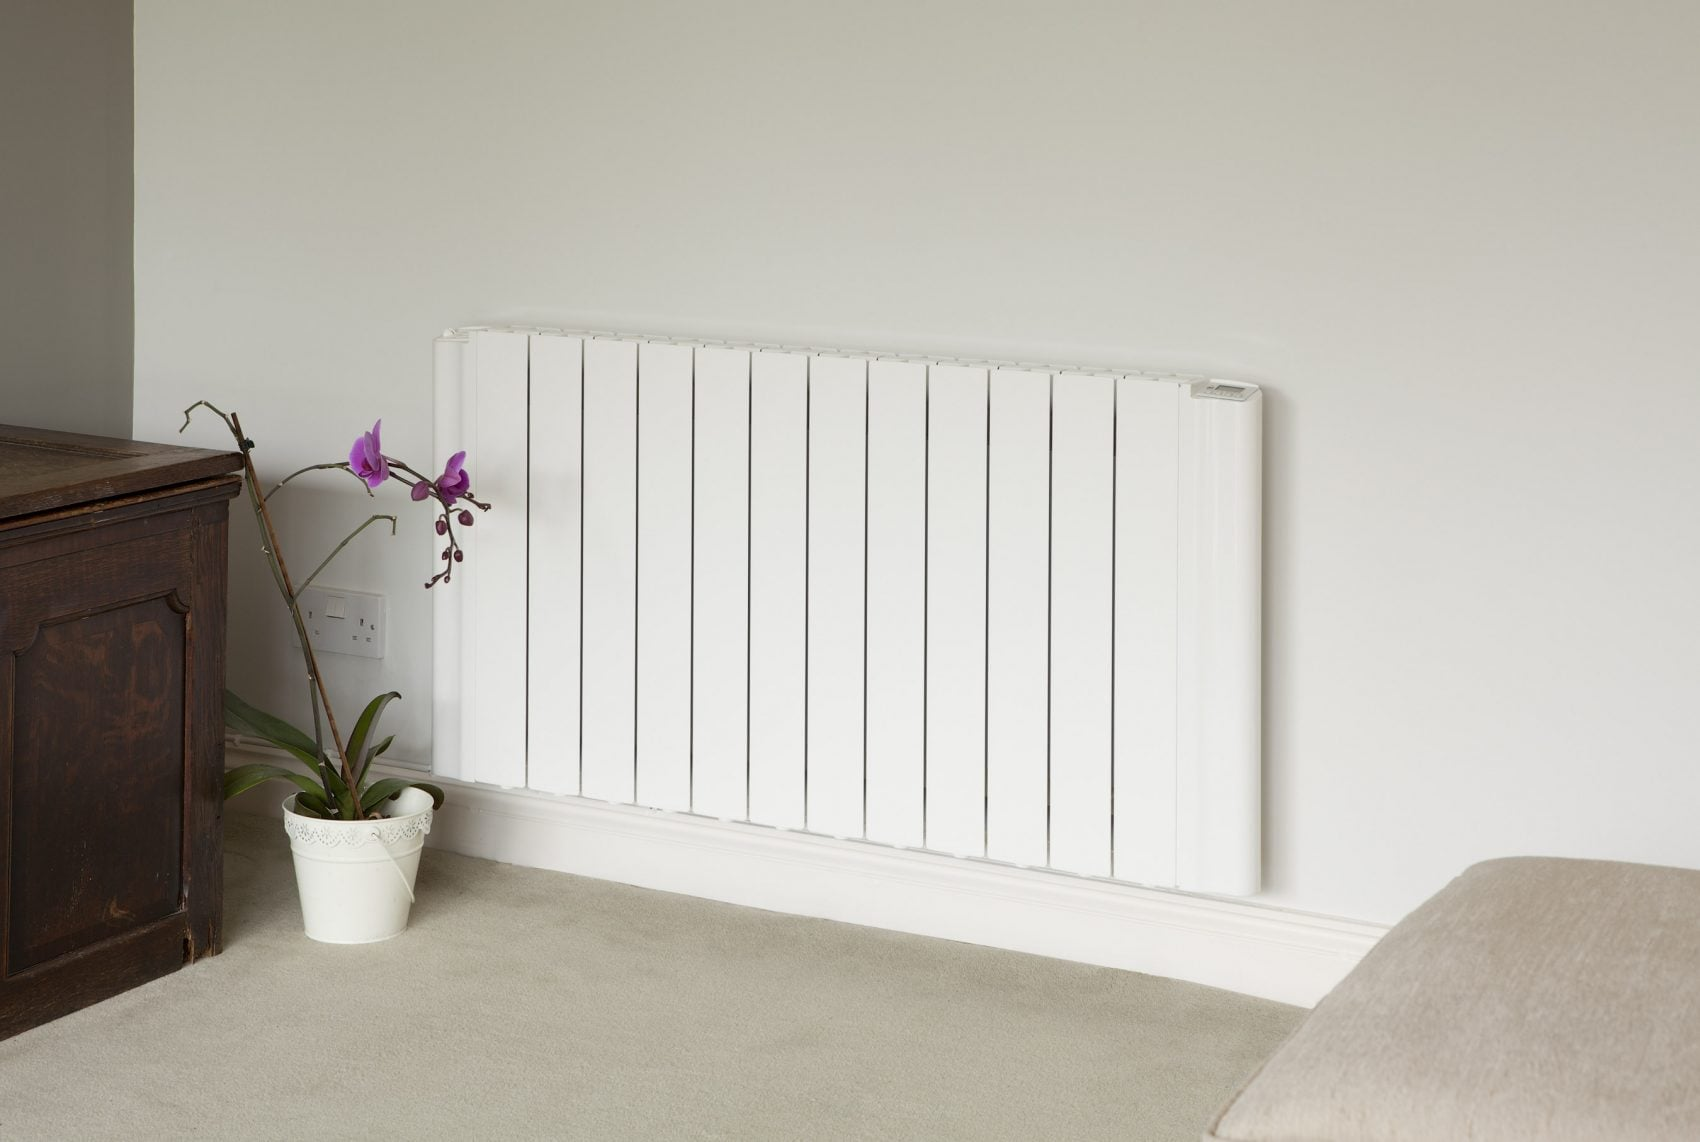 Electric Central Heating Systems What Are The Benefits